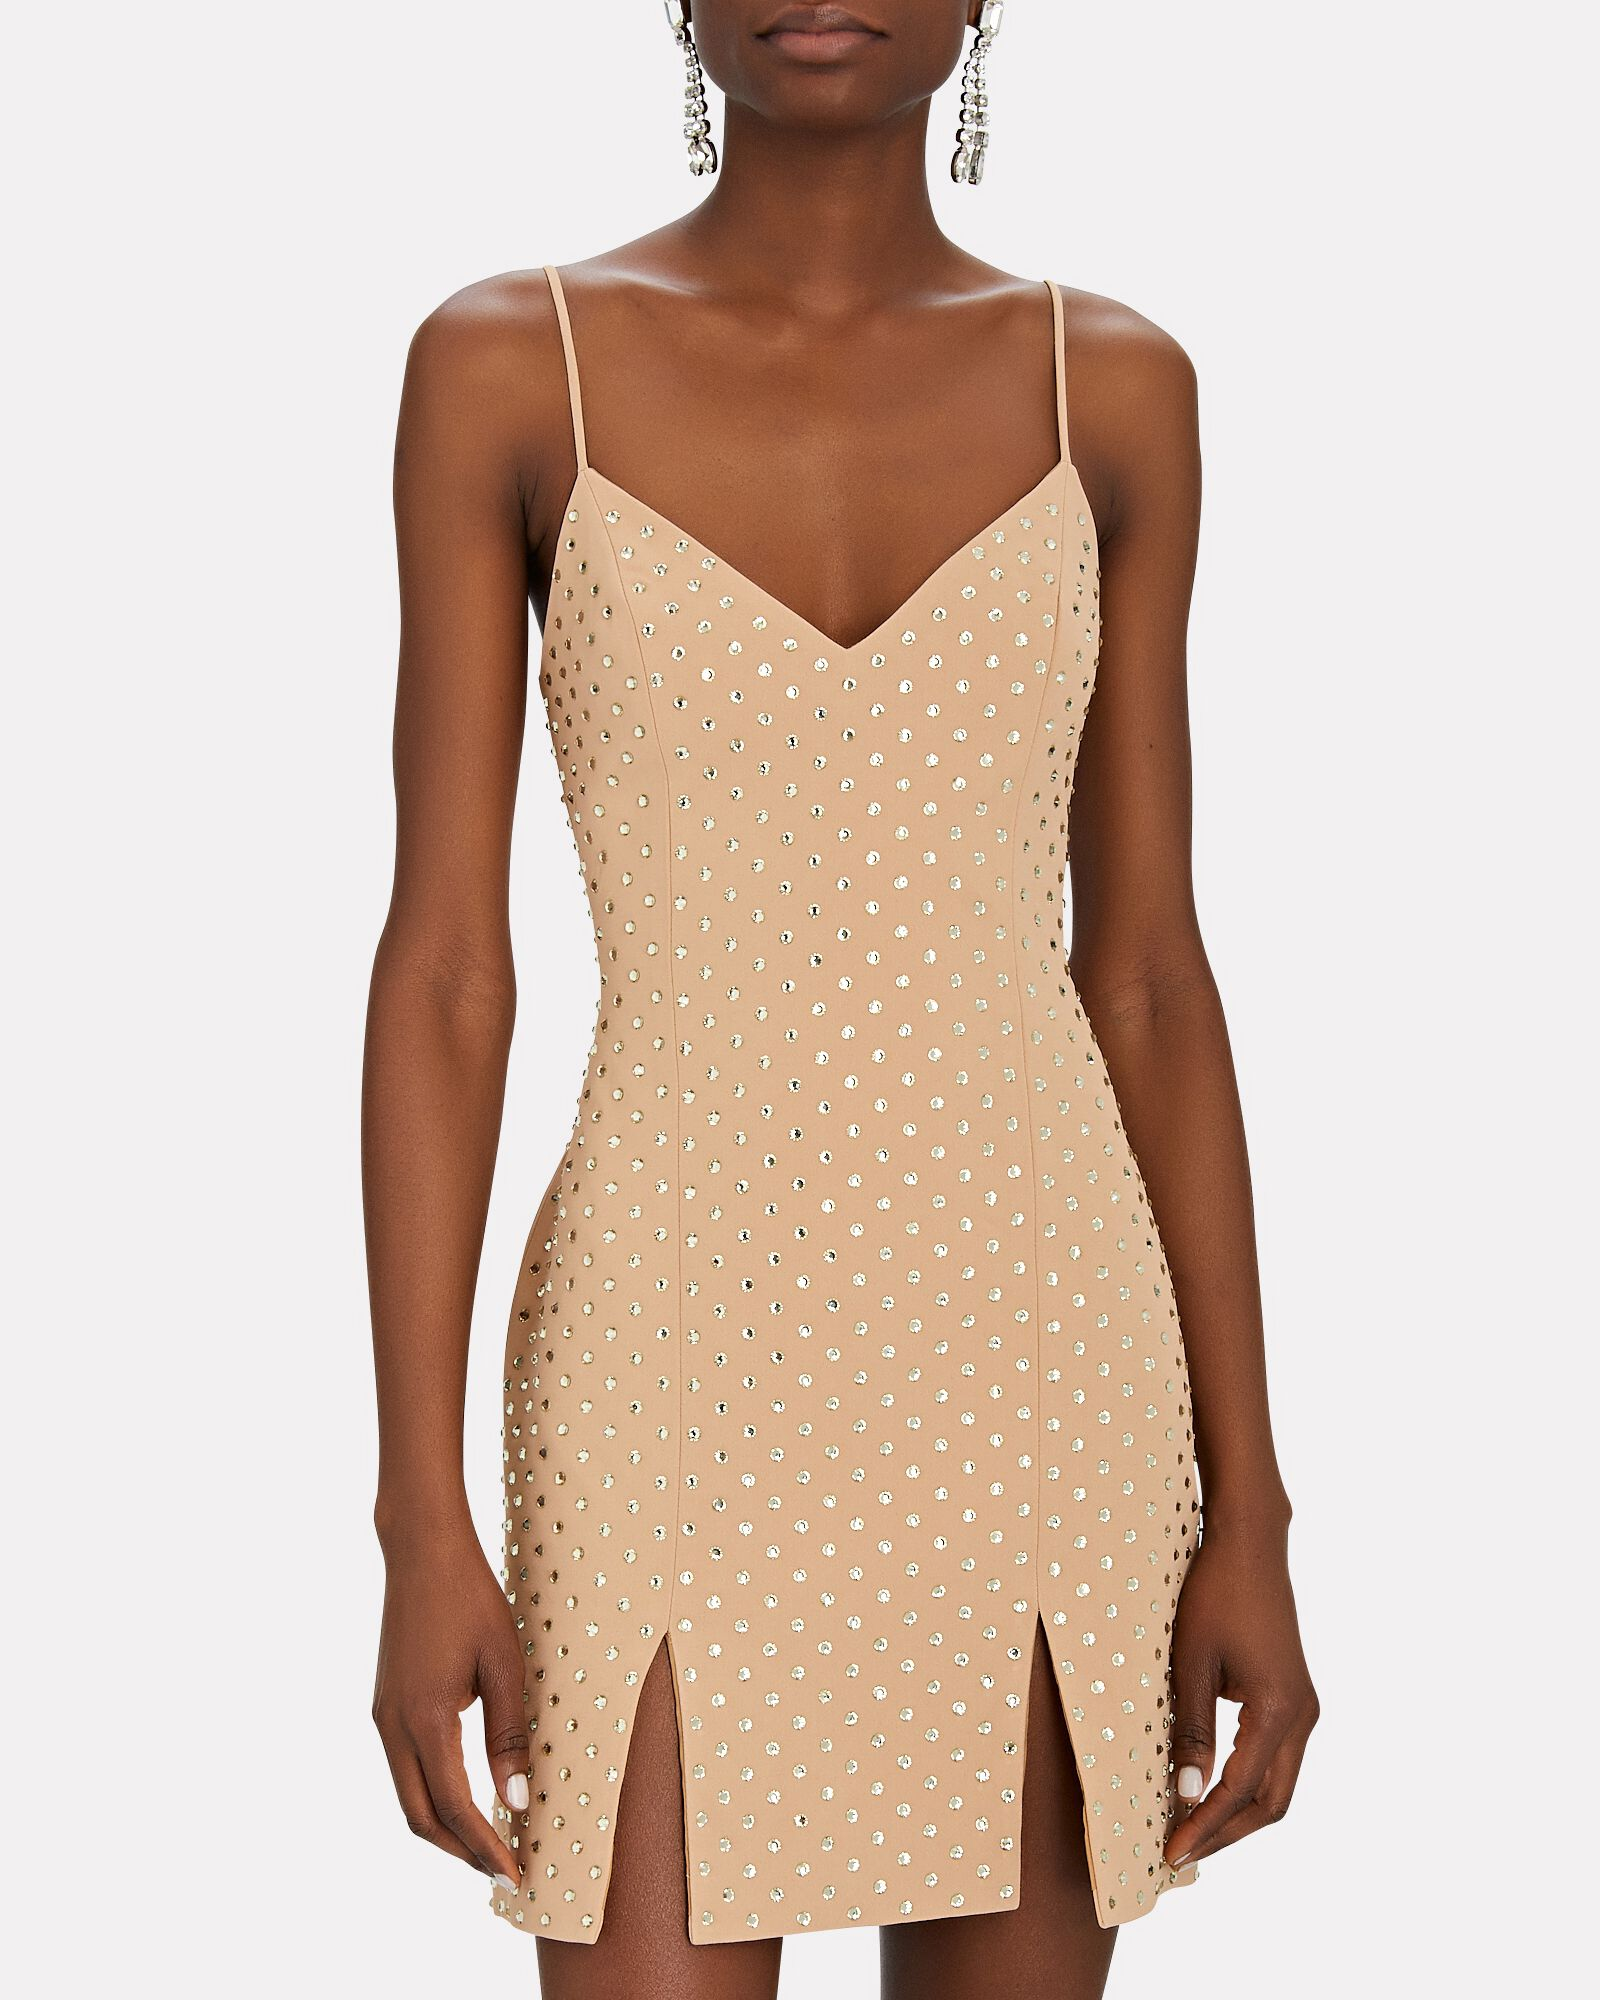 Crystal Embellished Mini Dress, BEIGE, hi-res